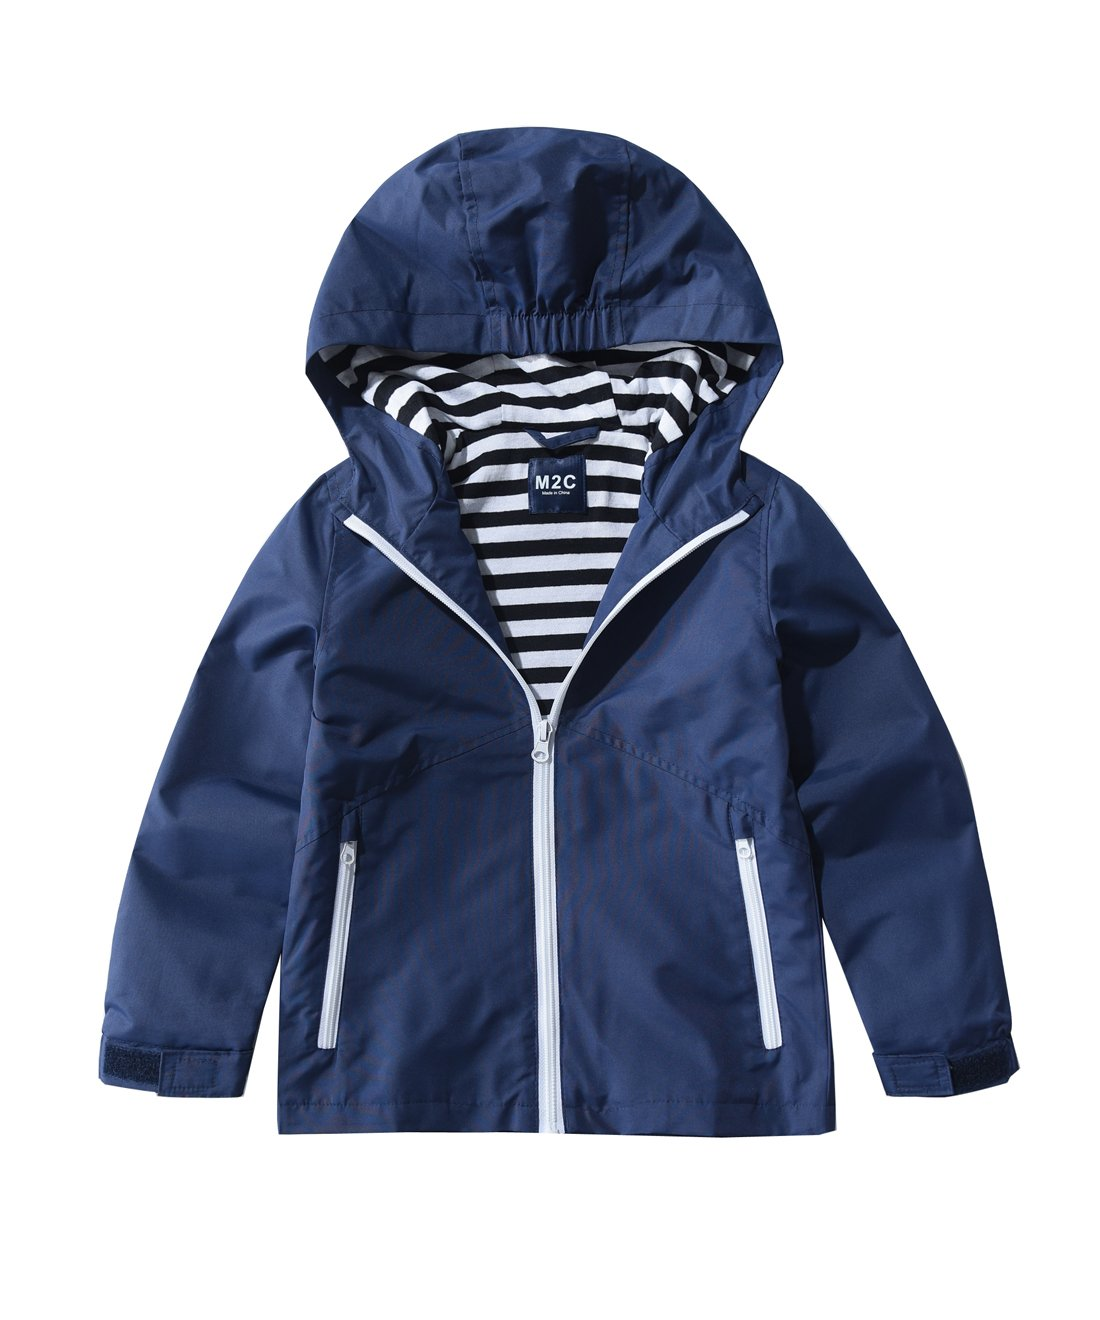 M2C Boys & Girls Hooded Windproof Jacket Light Windbreaker 4T Navy